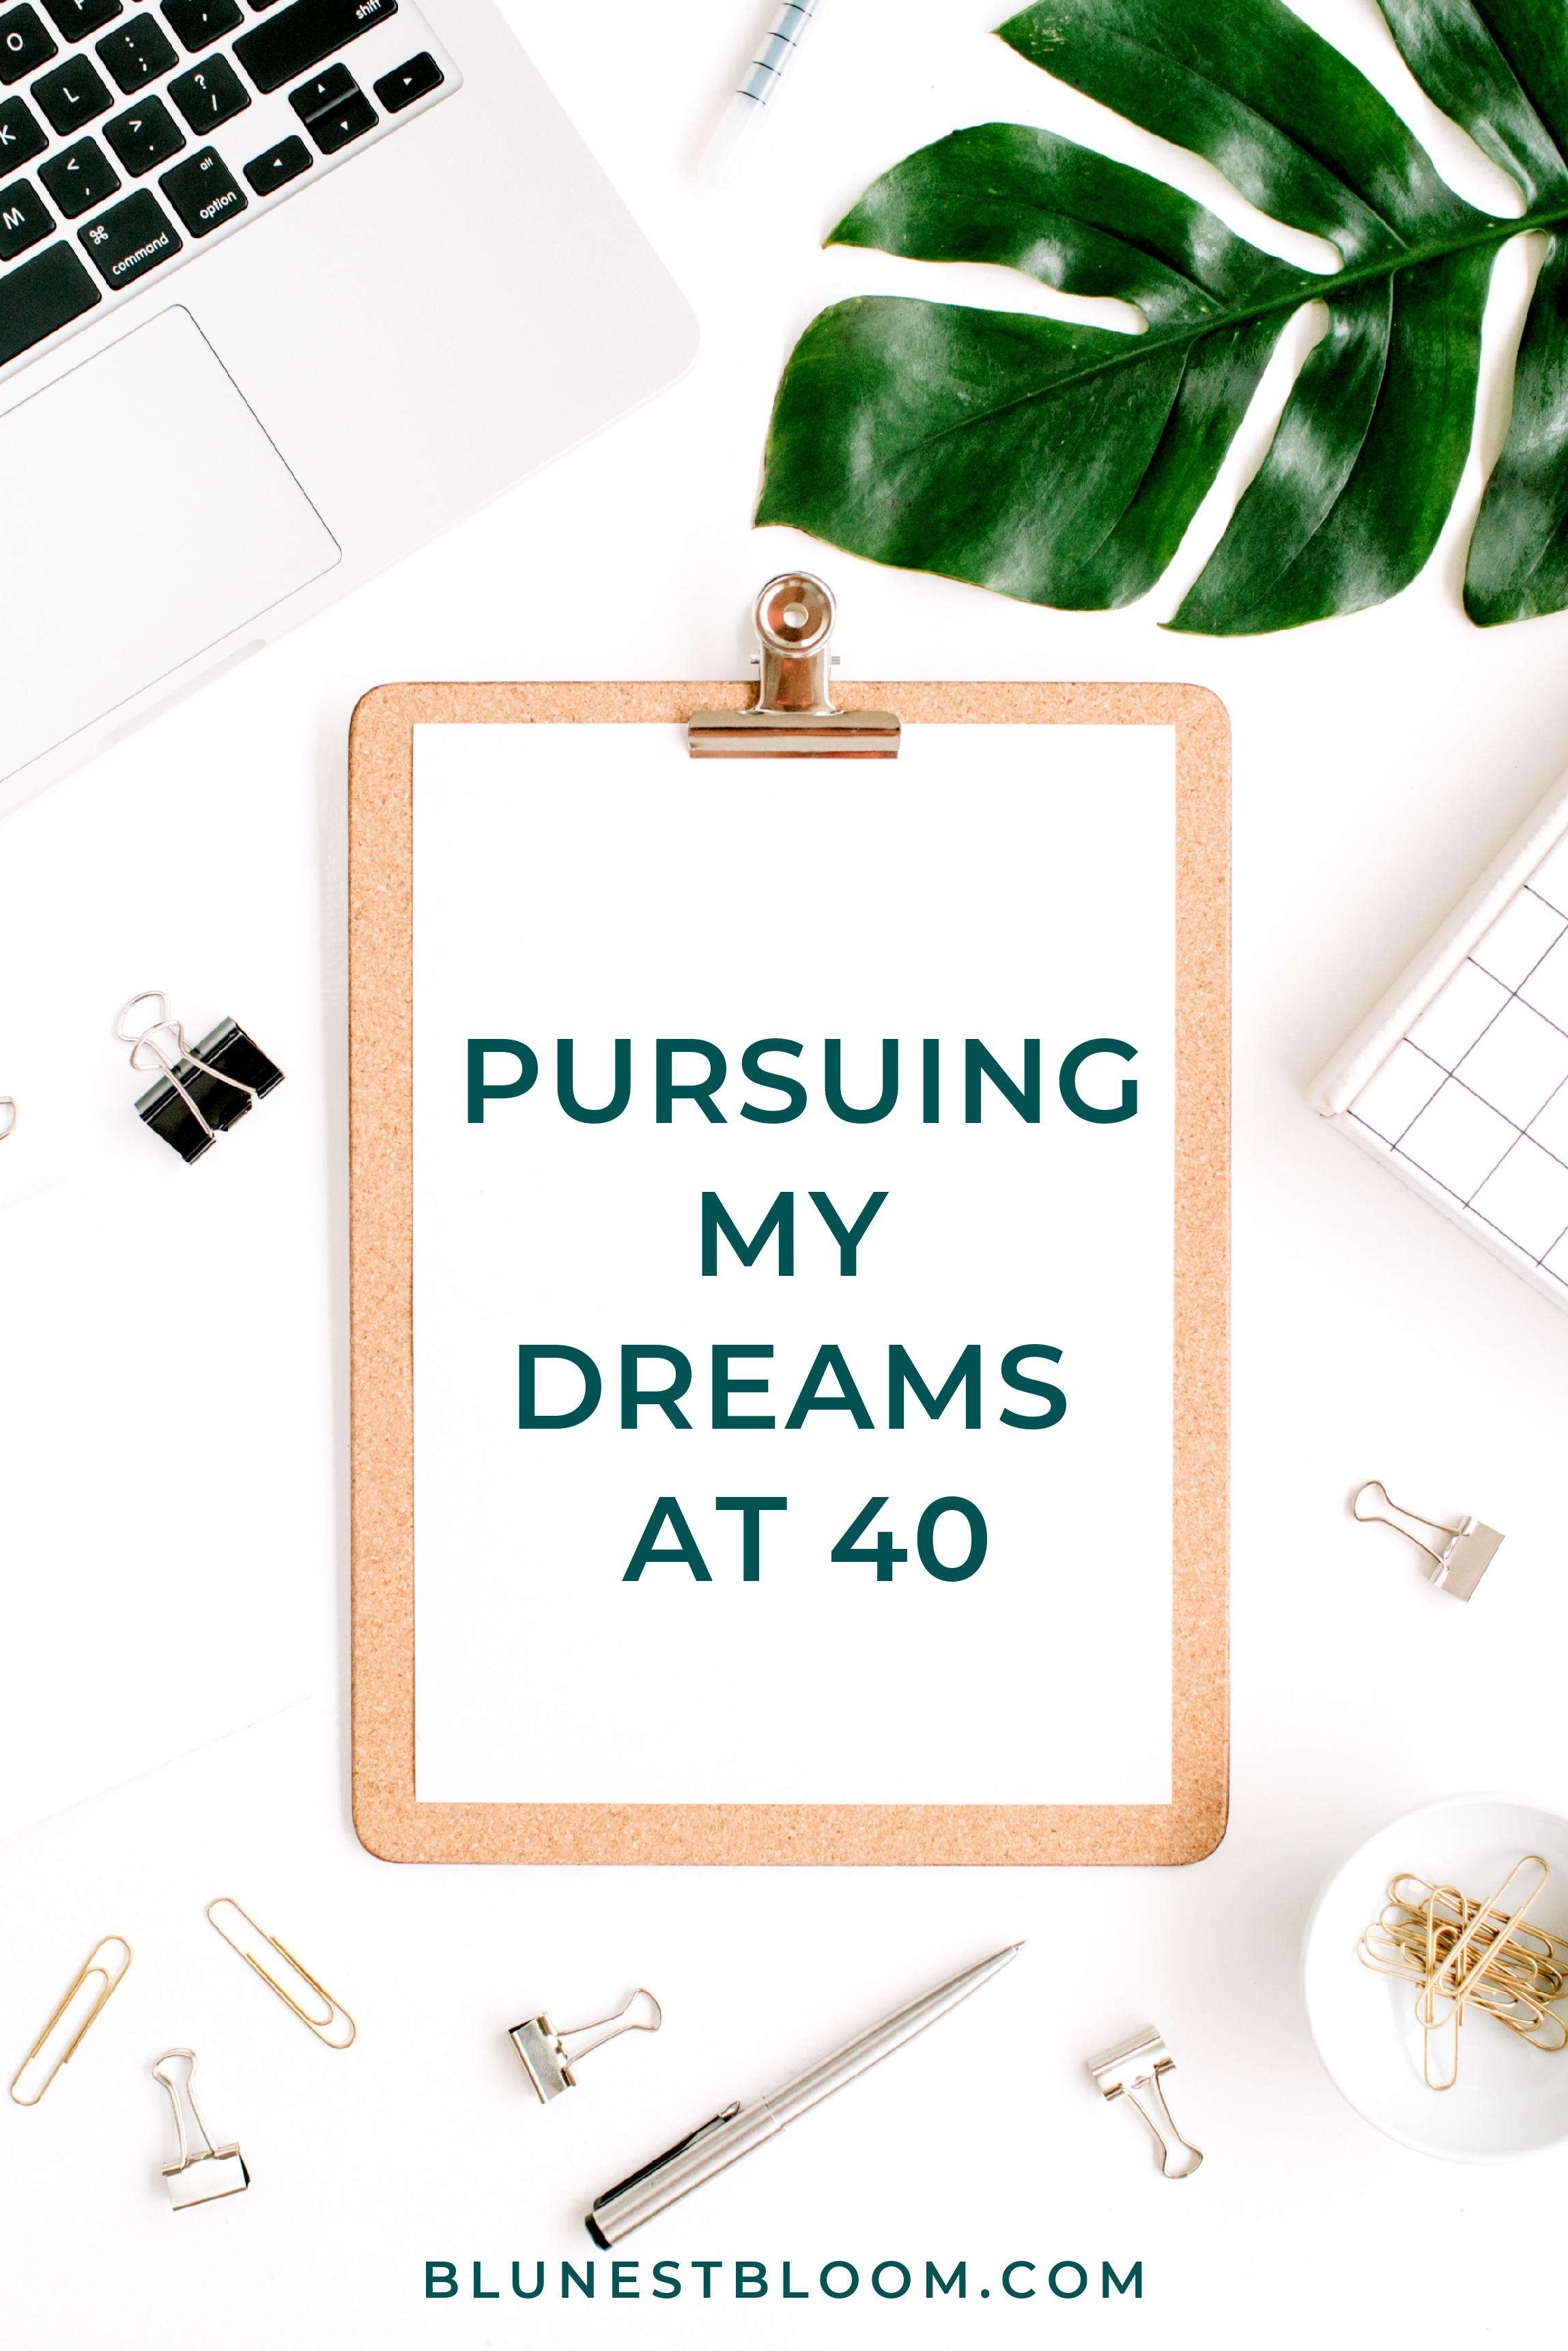 Pursuing My Dreams at 40